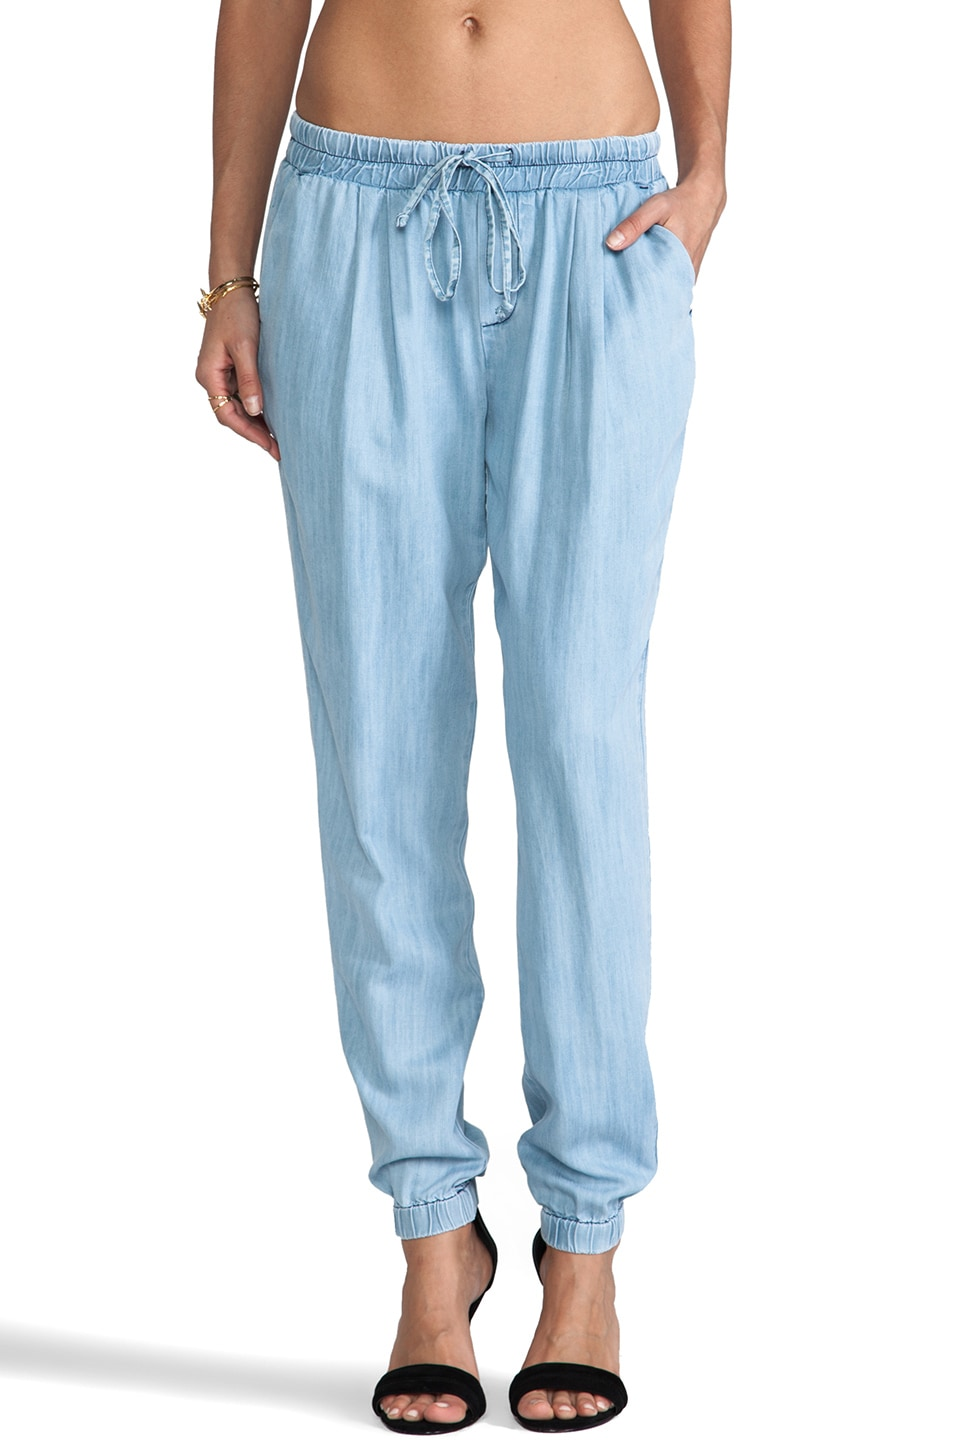 C&C California Textured Chambray Pants in Chambray Multi